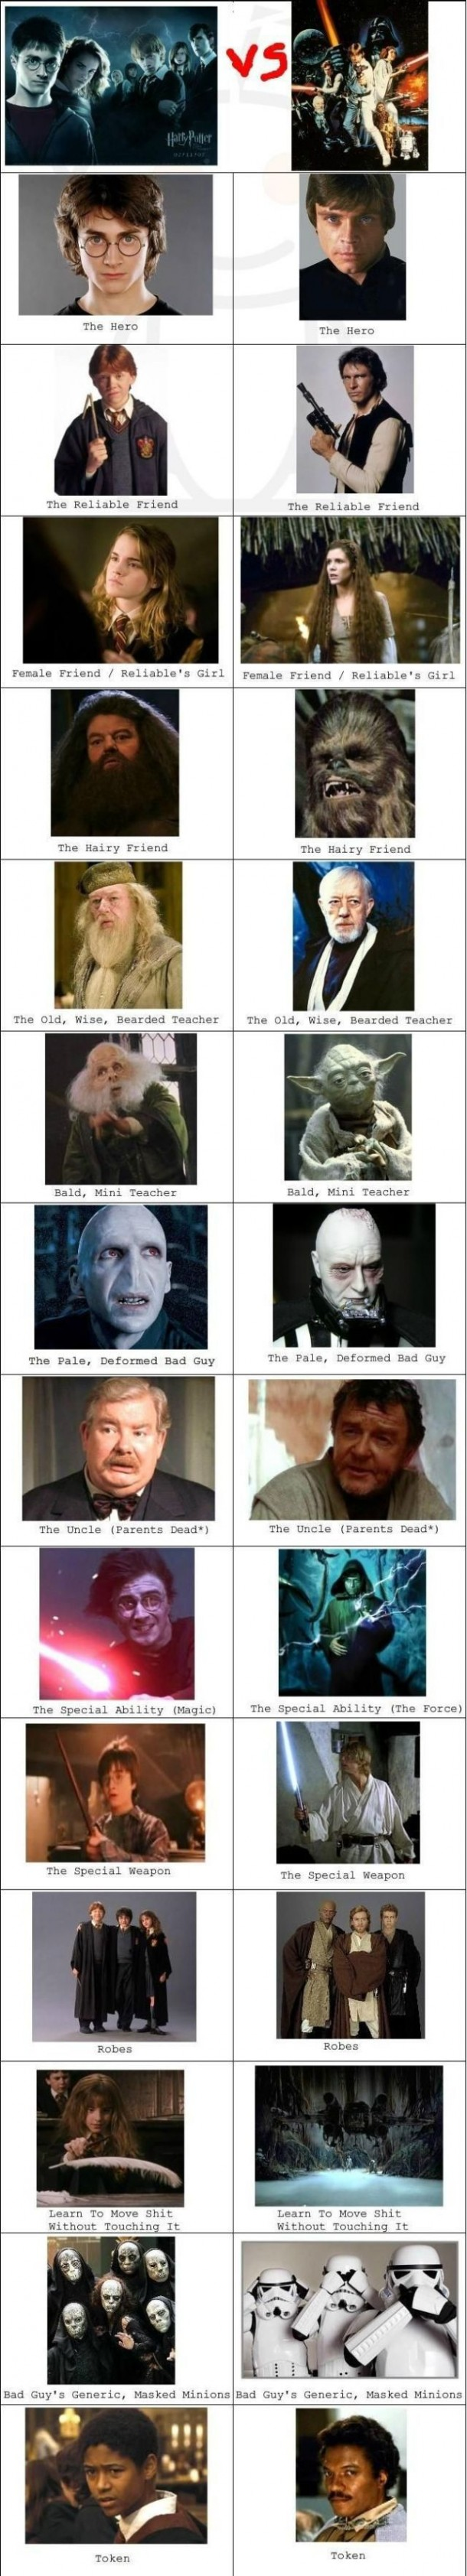 harry-potter-vs-star-wars